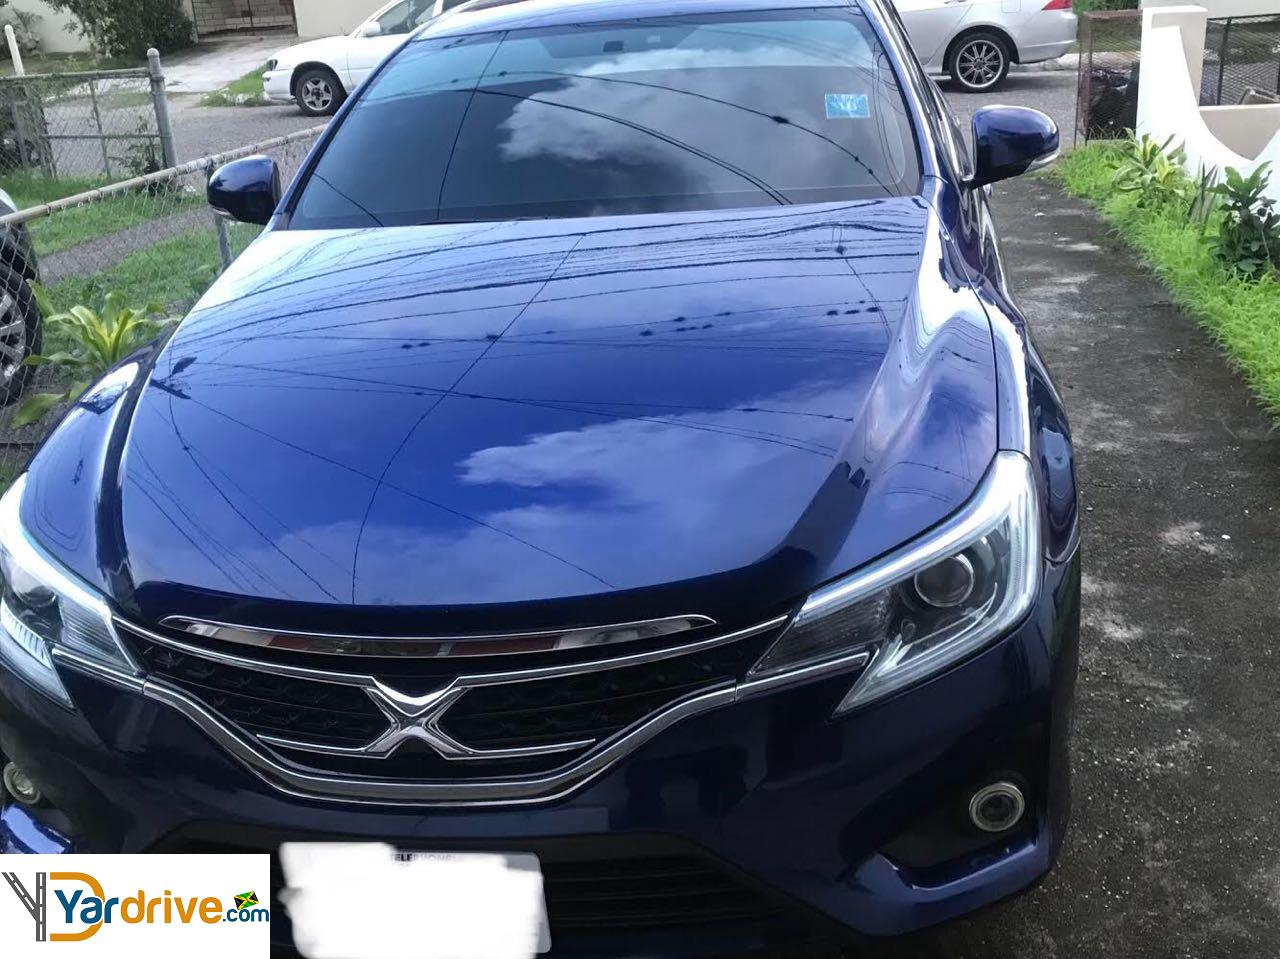 Cars For Sale In Jamaica With Financing: Cars For Sale In Jamaica 2014 Used Toyota Mark X ((( PRICE